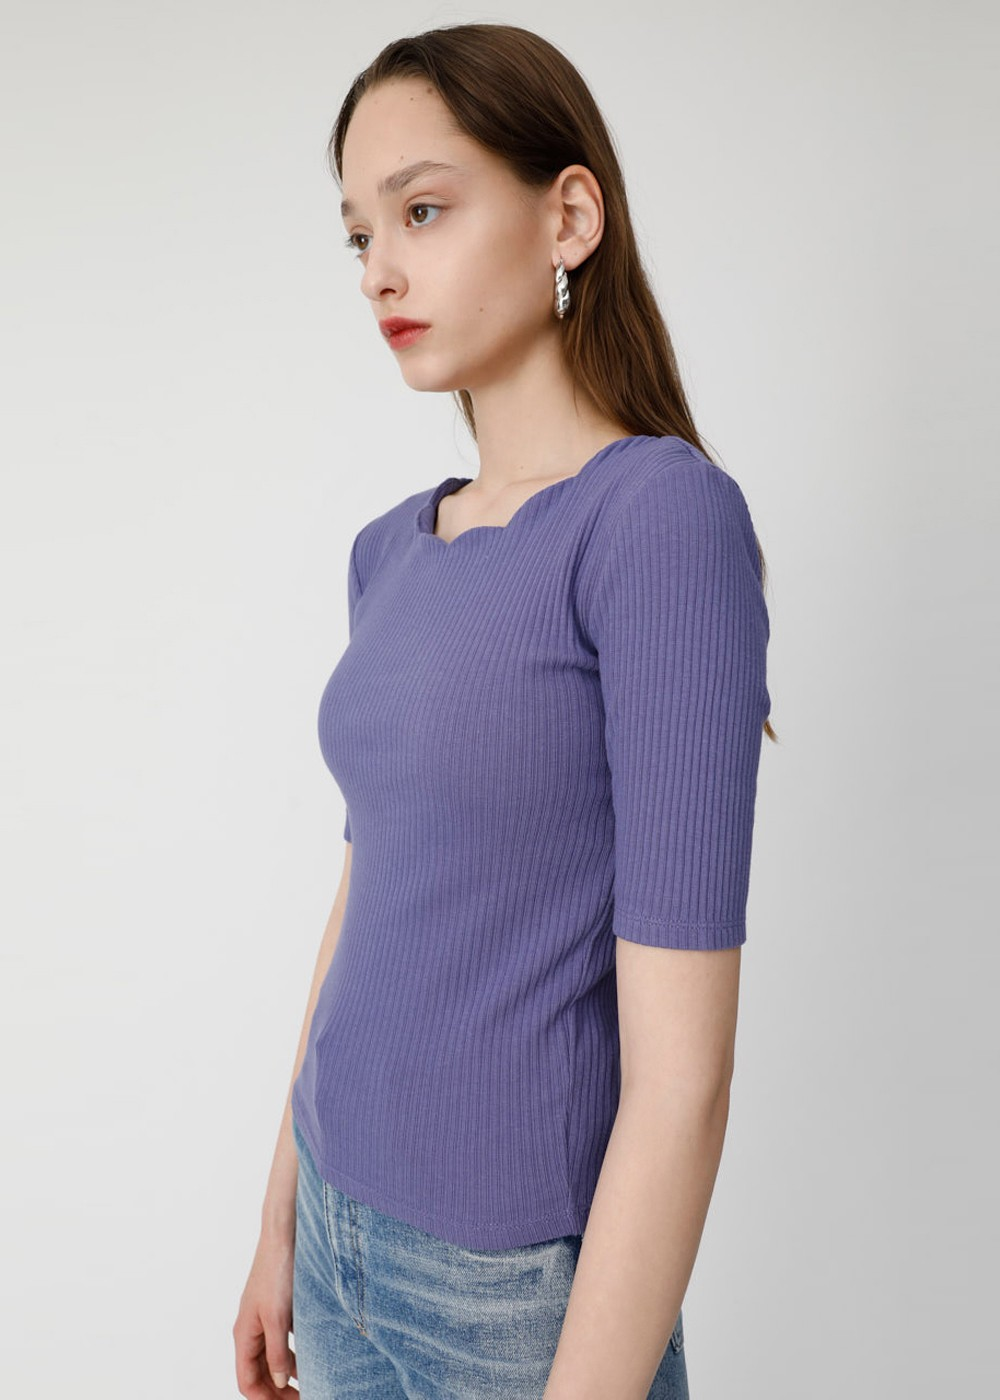 【最大70%OFF】SCALLOPED CUT TOP|PUR|カットソー|MOUSSY